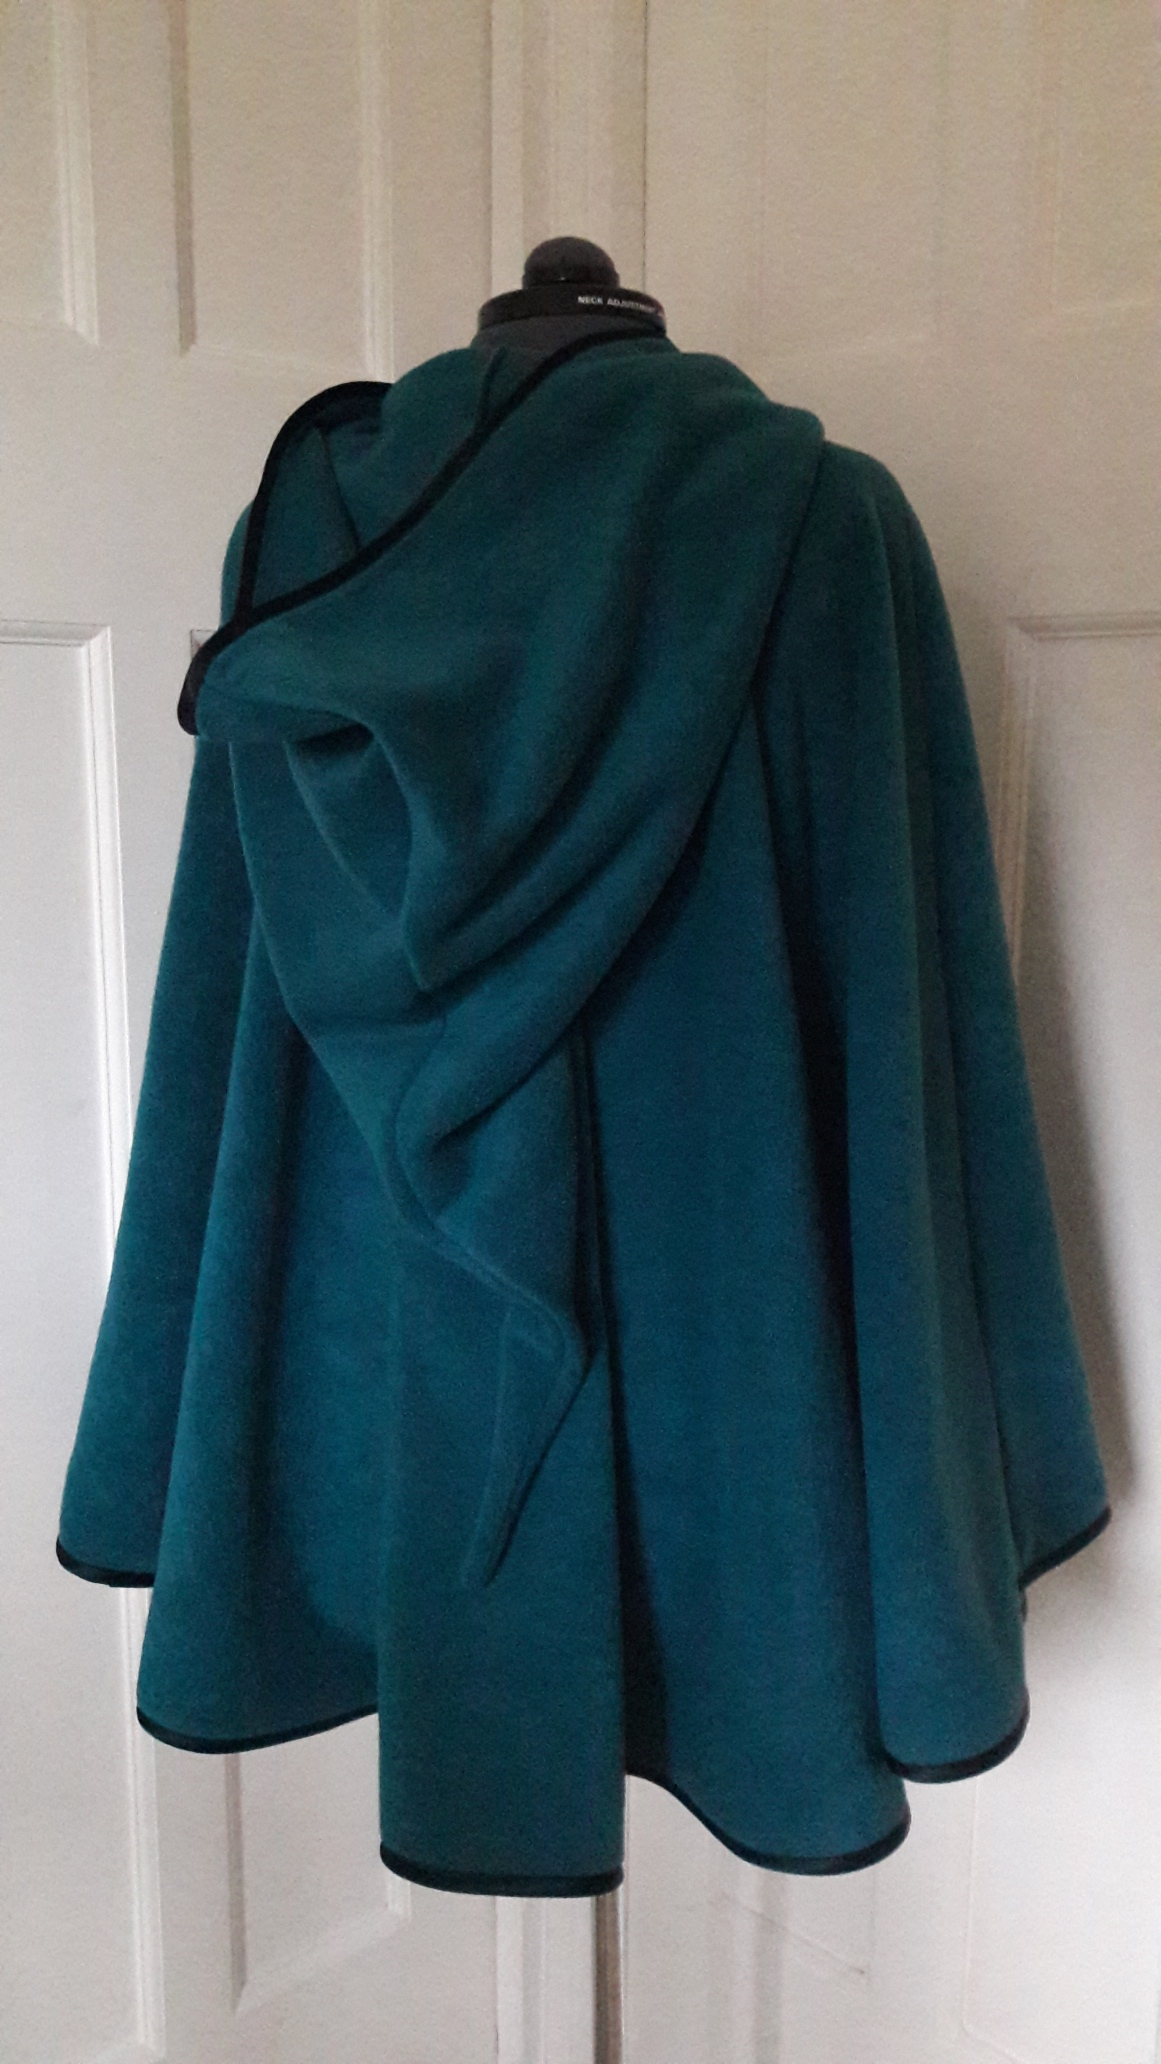 Cape edged with black satin binding - pointed hood - choice of colours - made to order